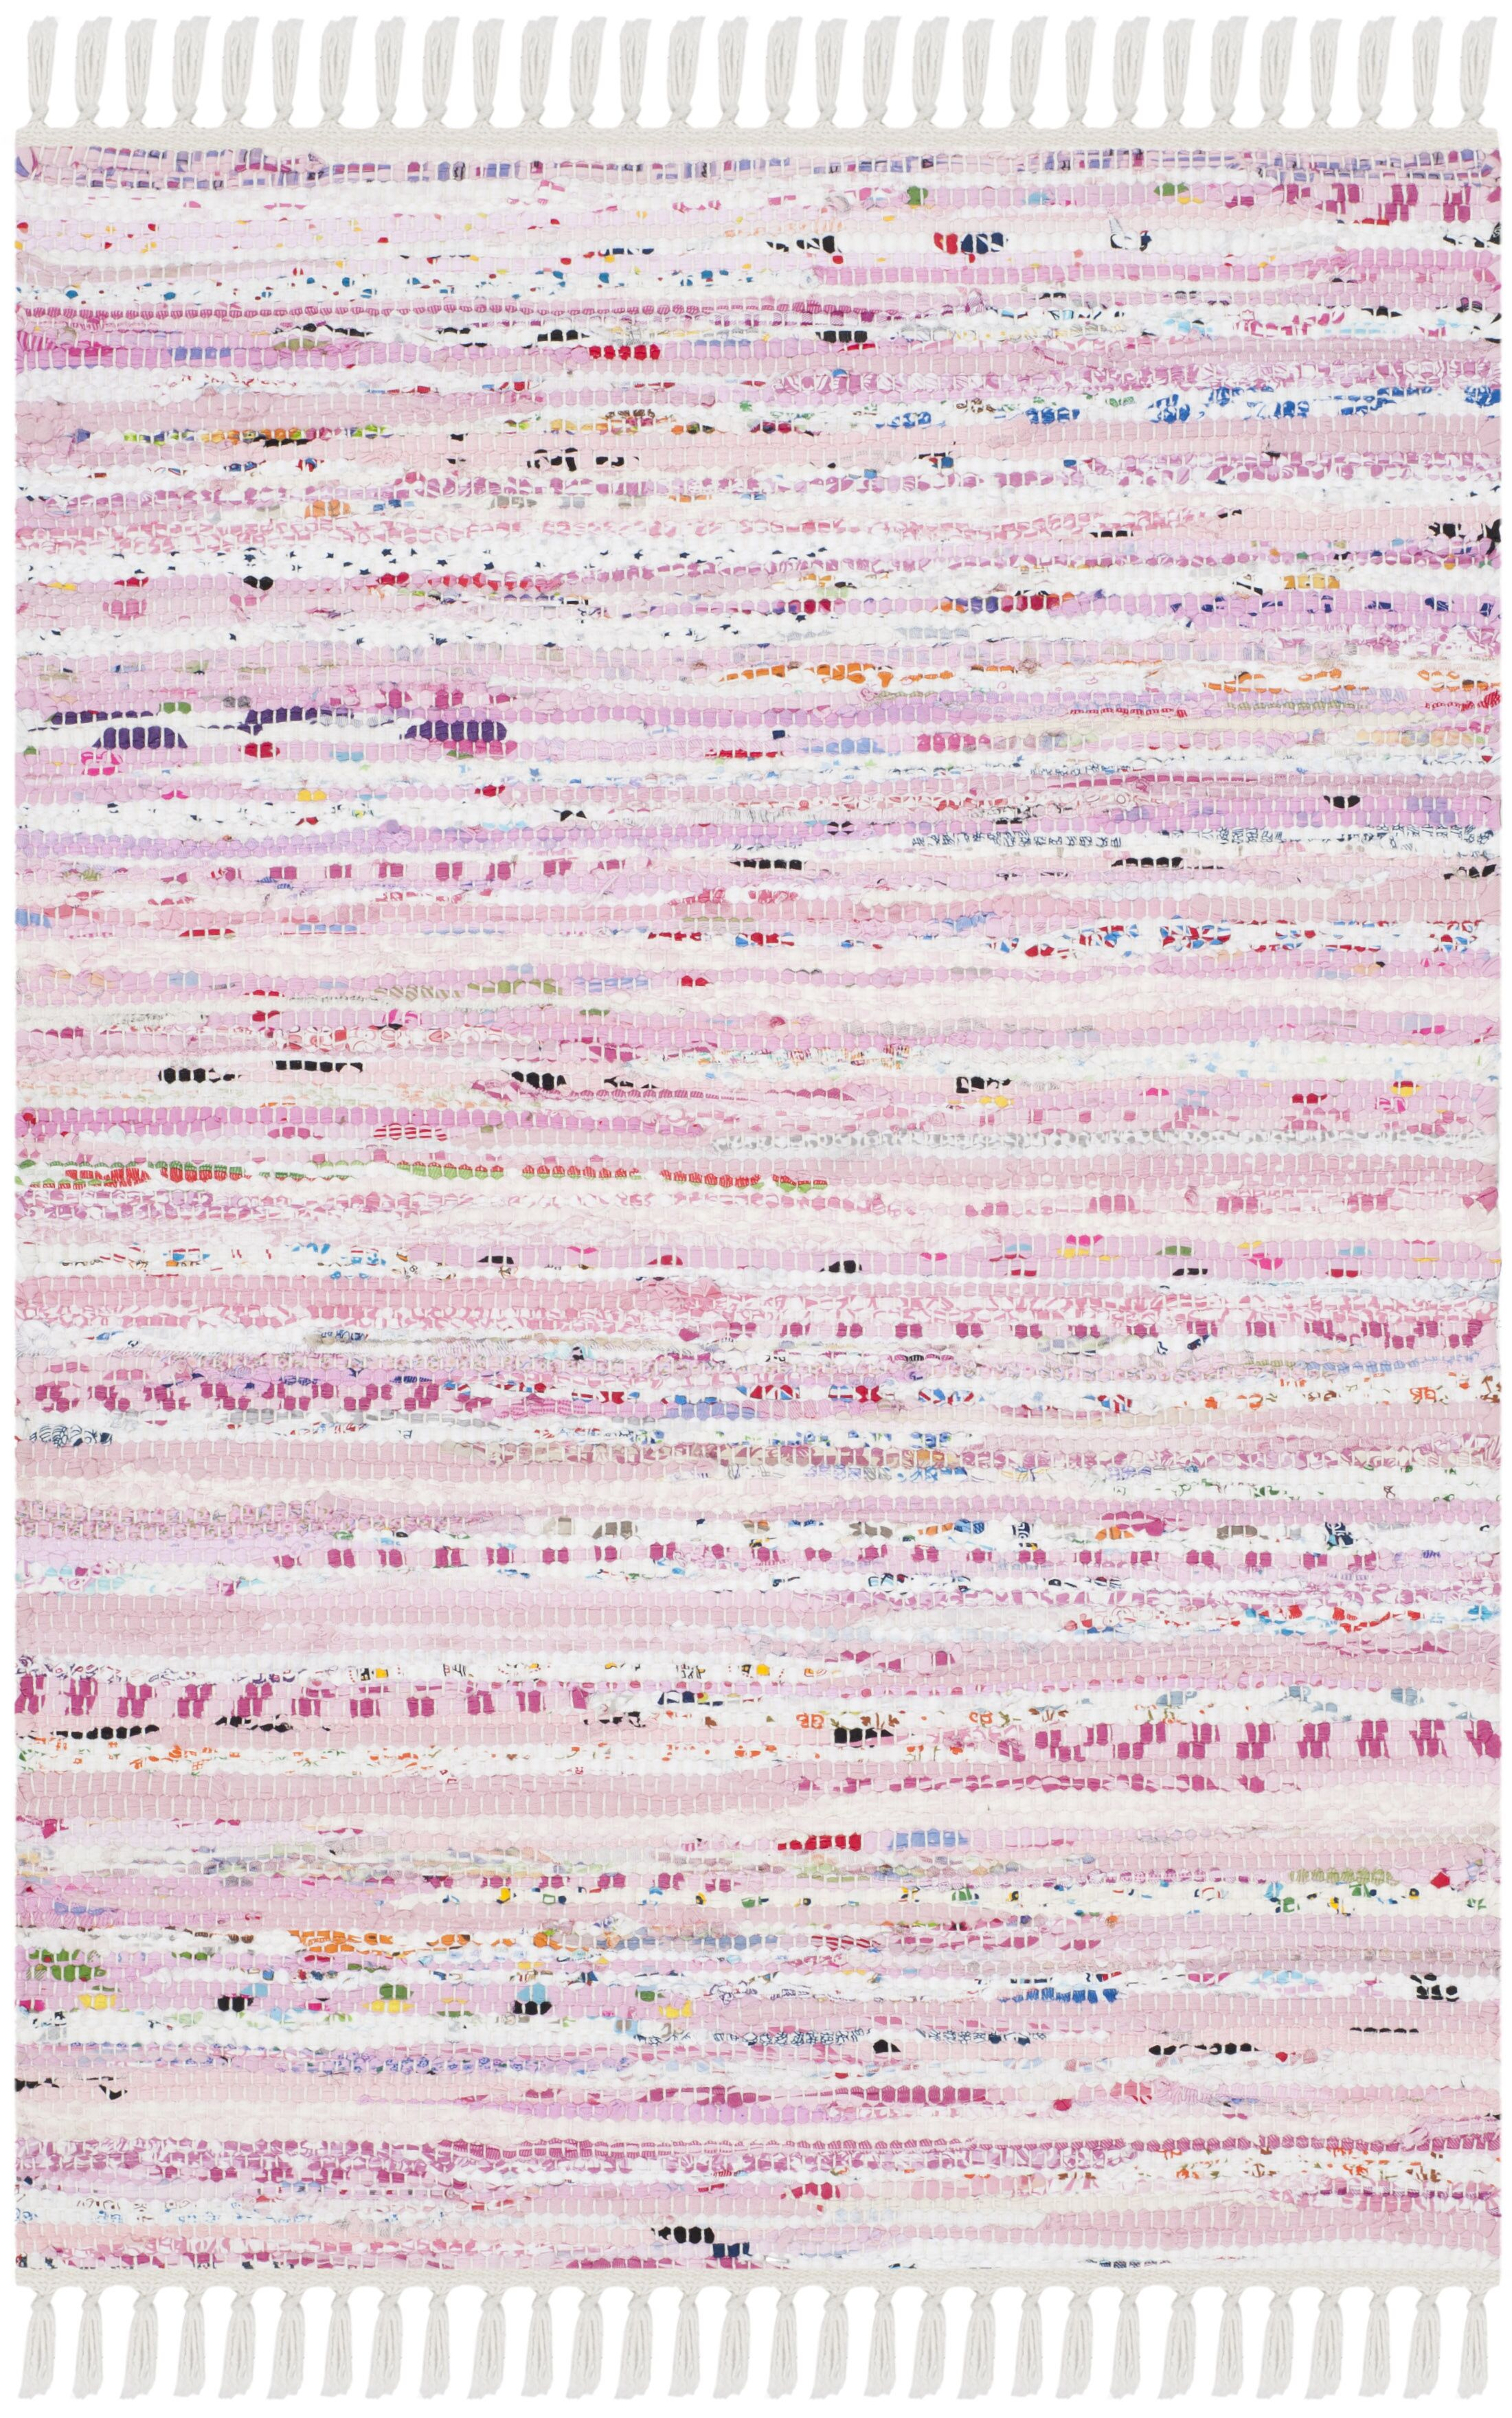 Lansing Hand-Woven Light Pink Area Rug Rug Size: Rectangle 8' x 10'